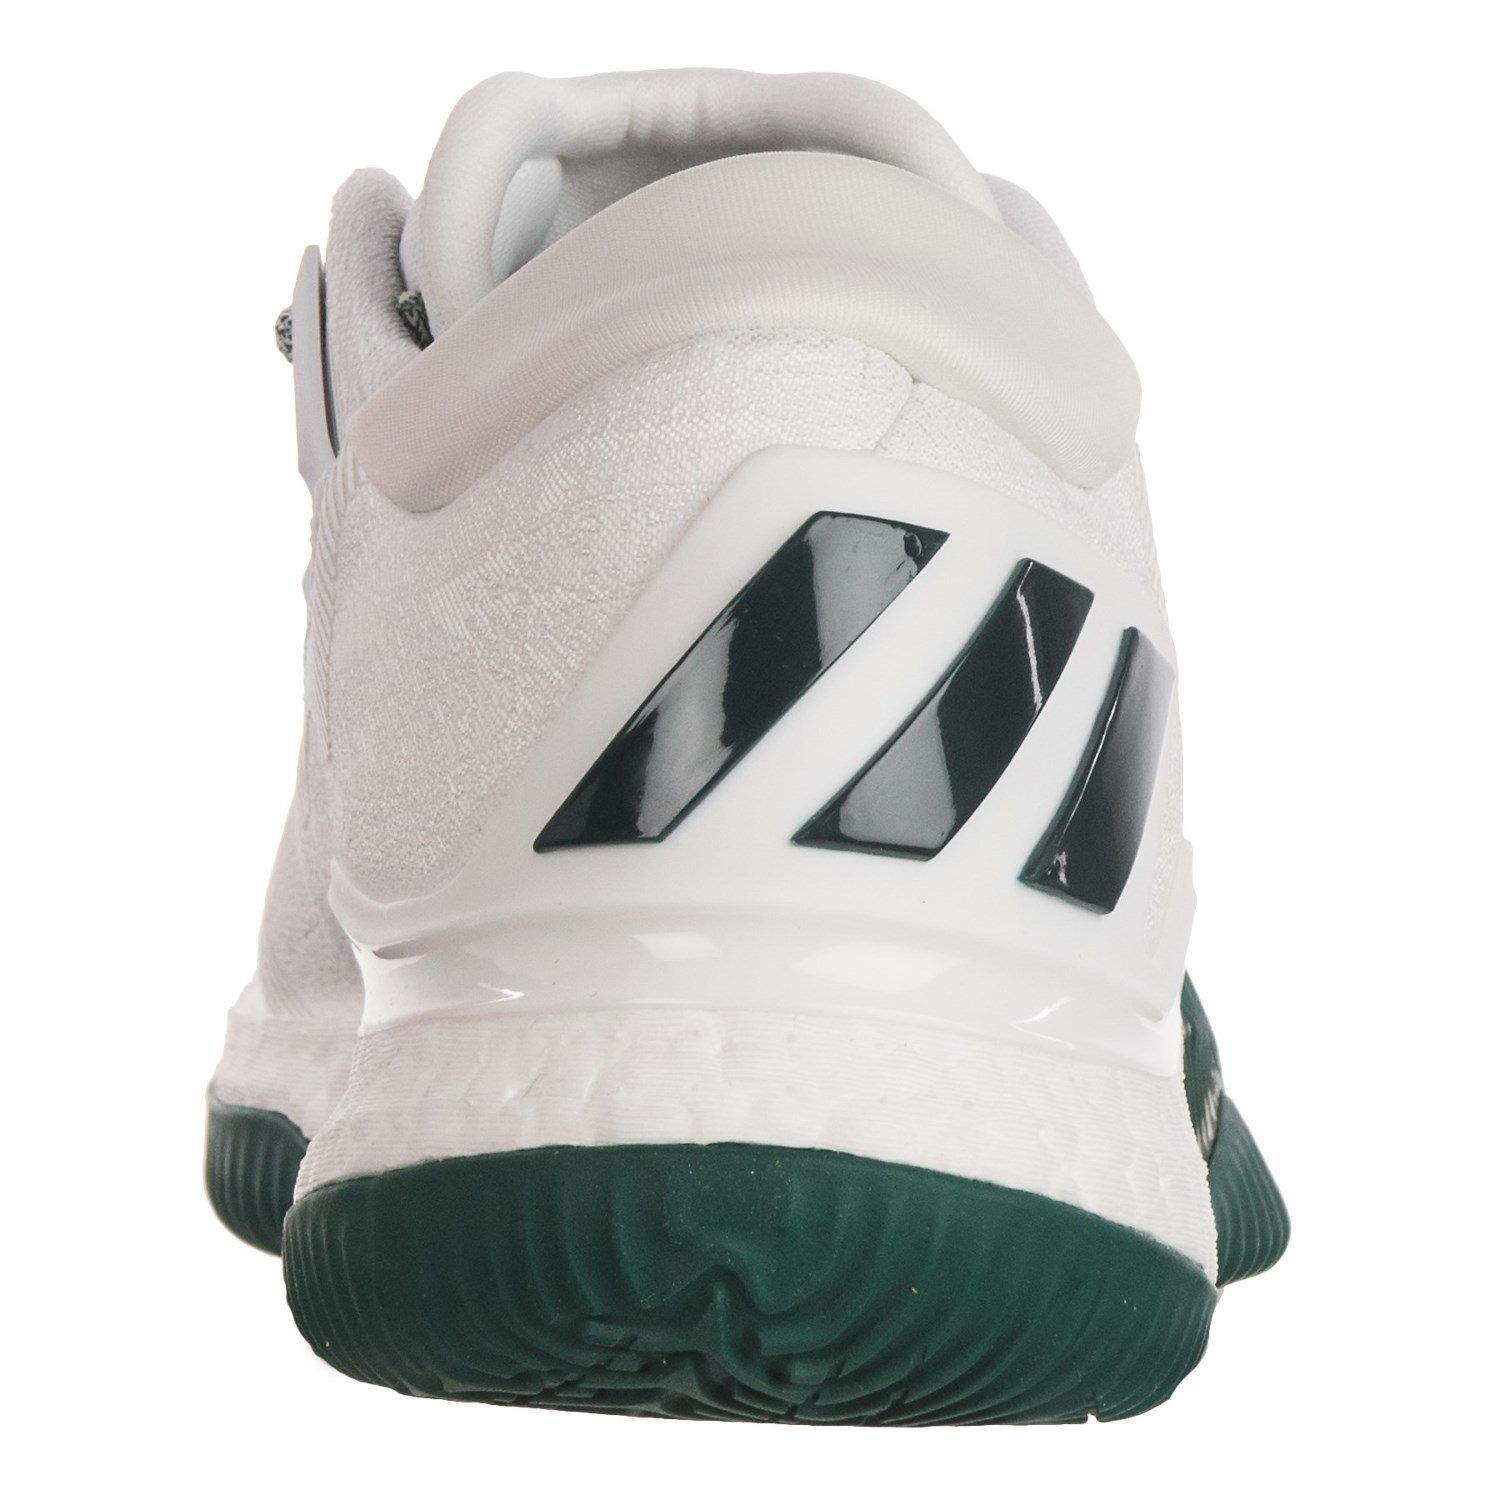 Adidas Sm Crazylight Boost Low 2016 Nba Basketball Shoes